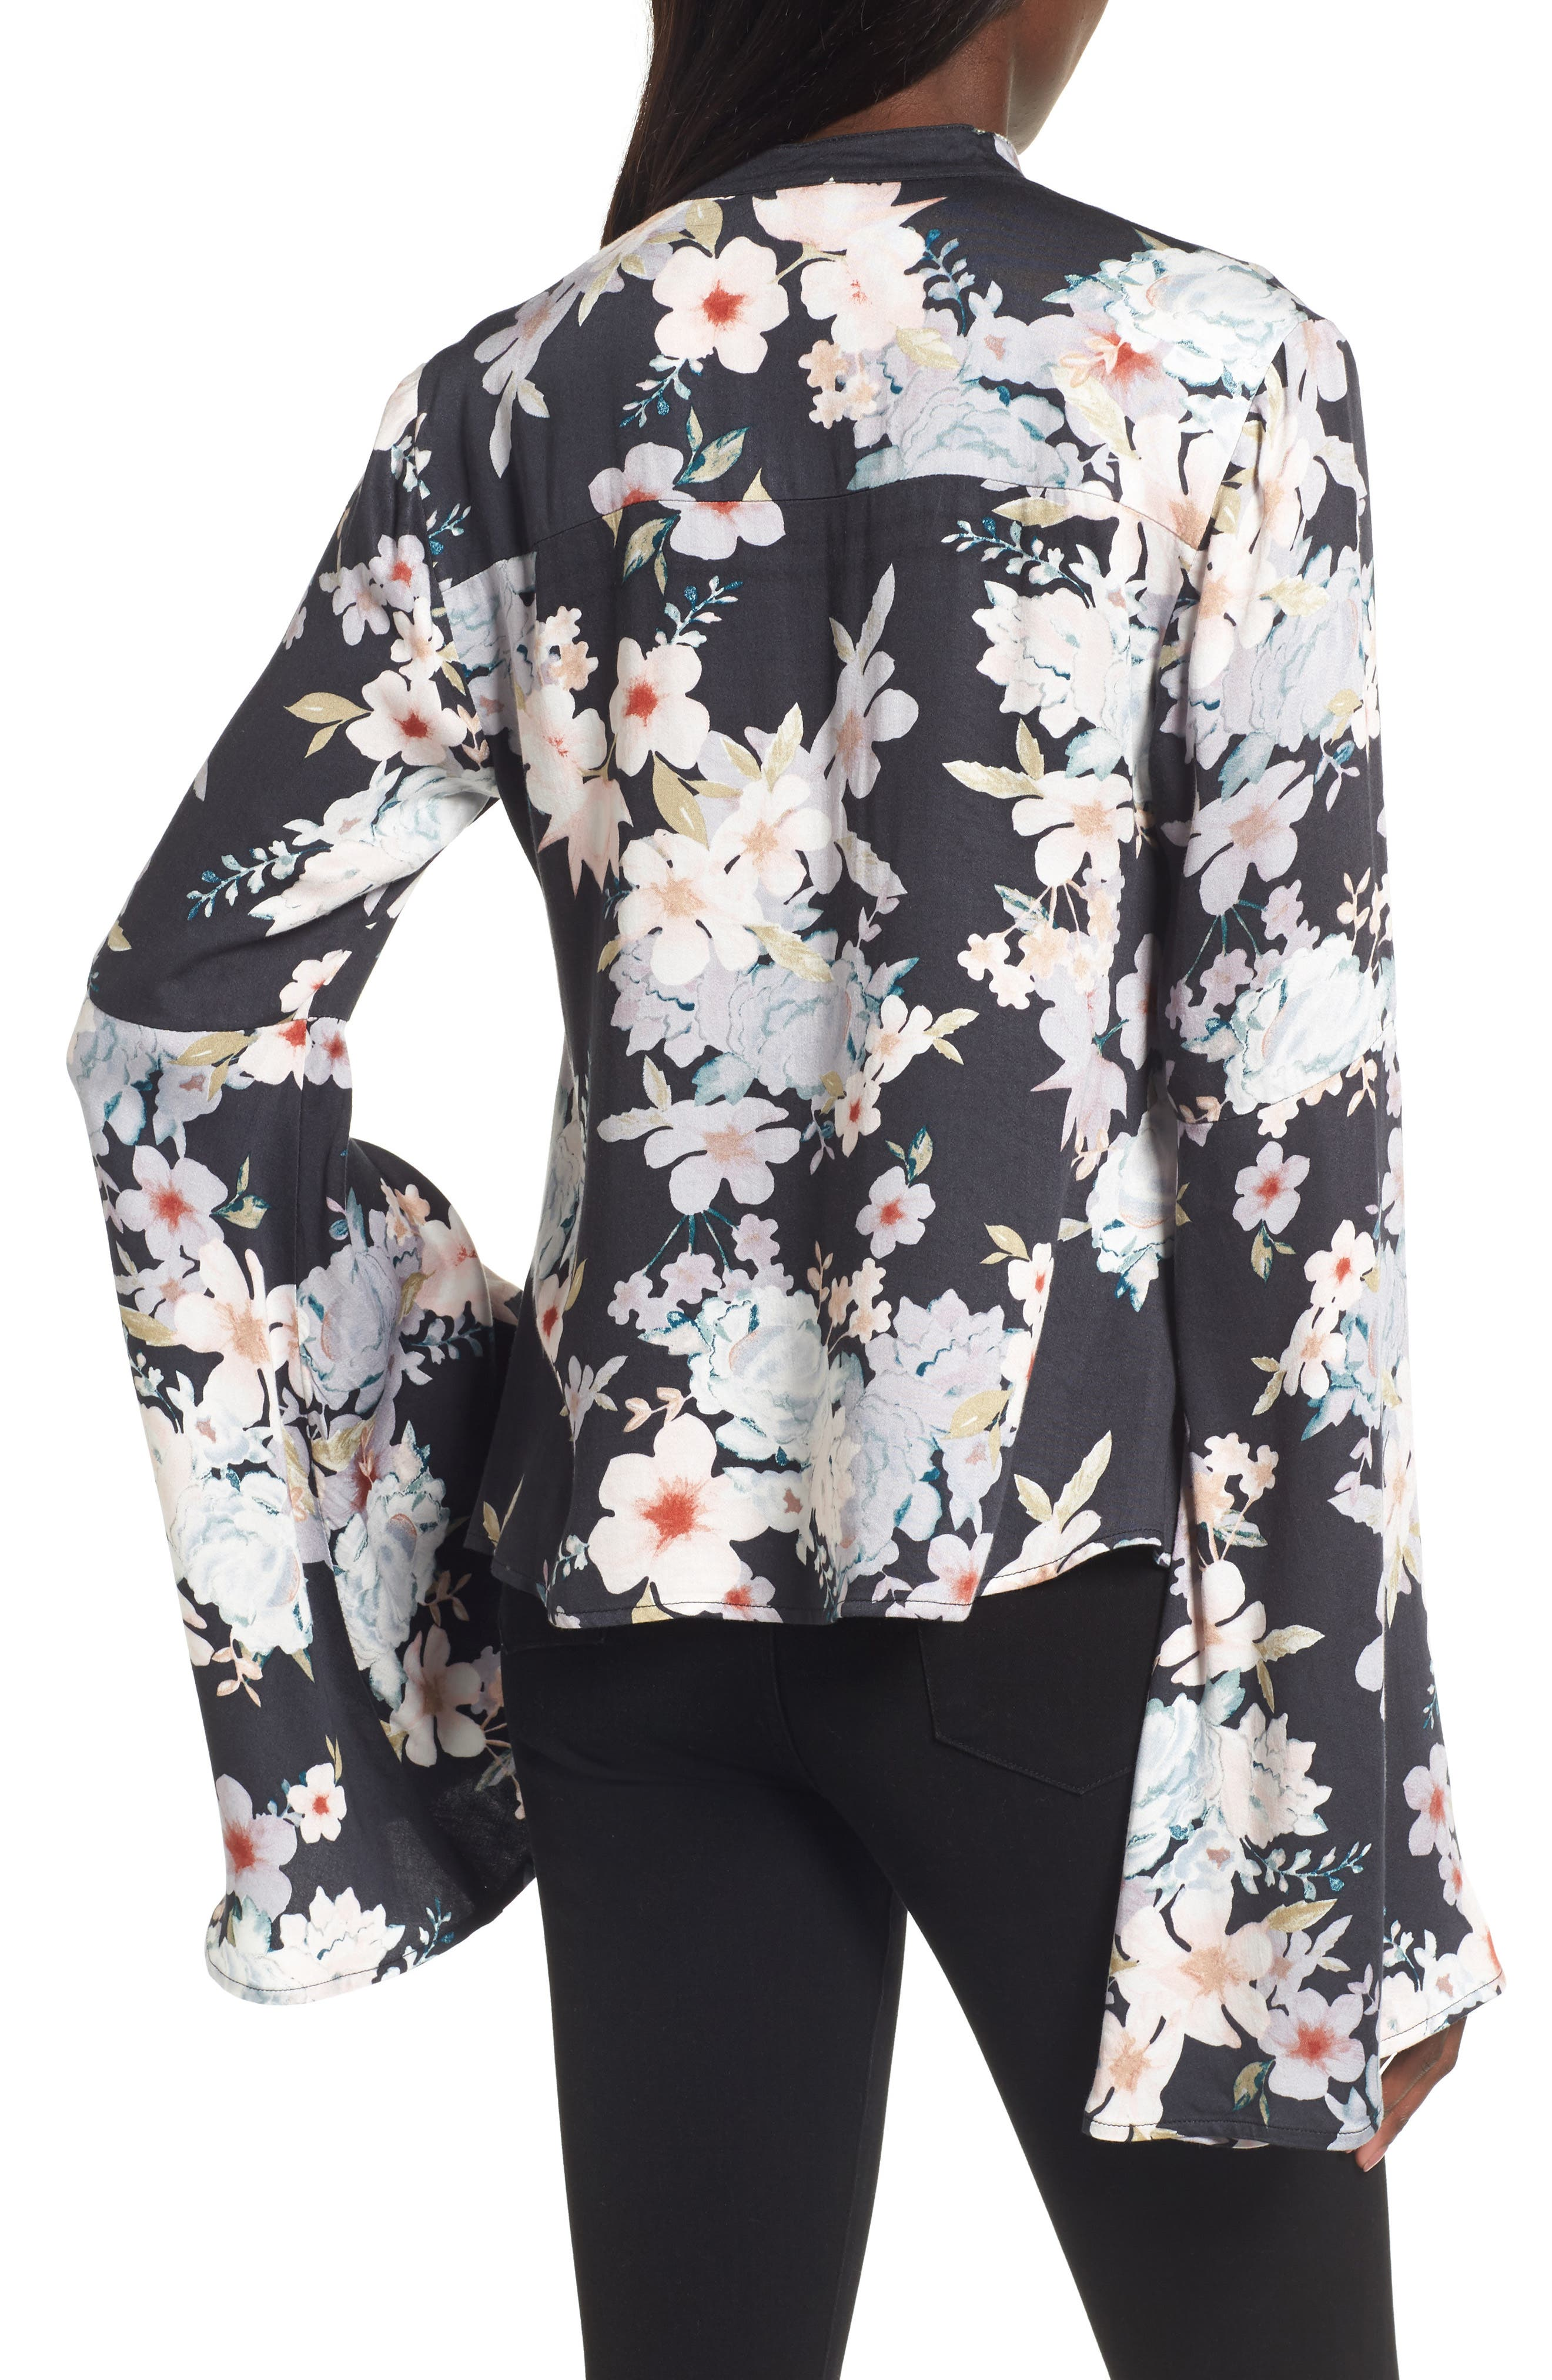 Mystic Nights Floral Blouse,                             Alternate thumbnail 2, color,                             400